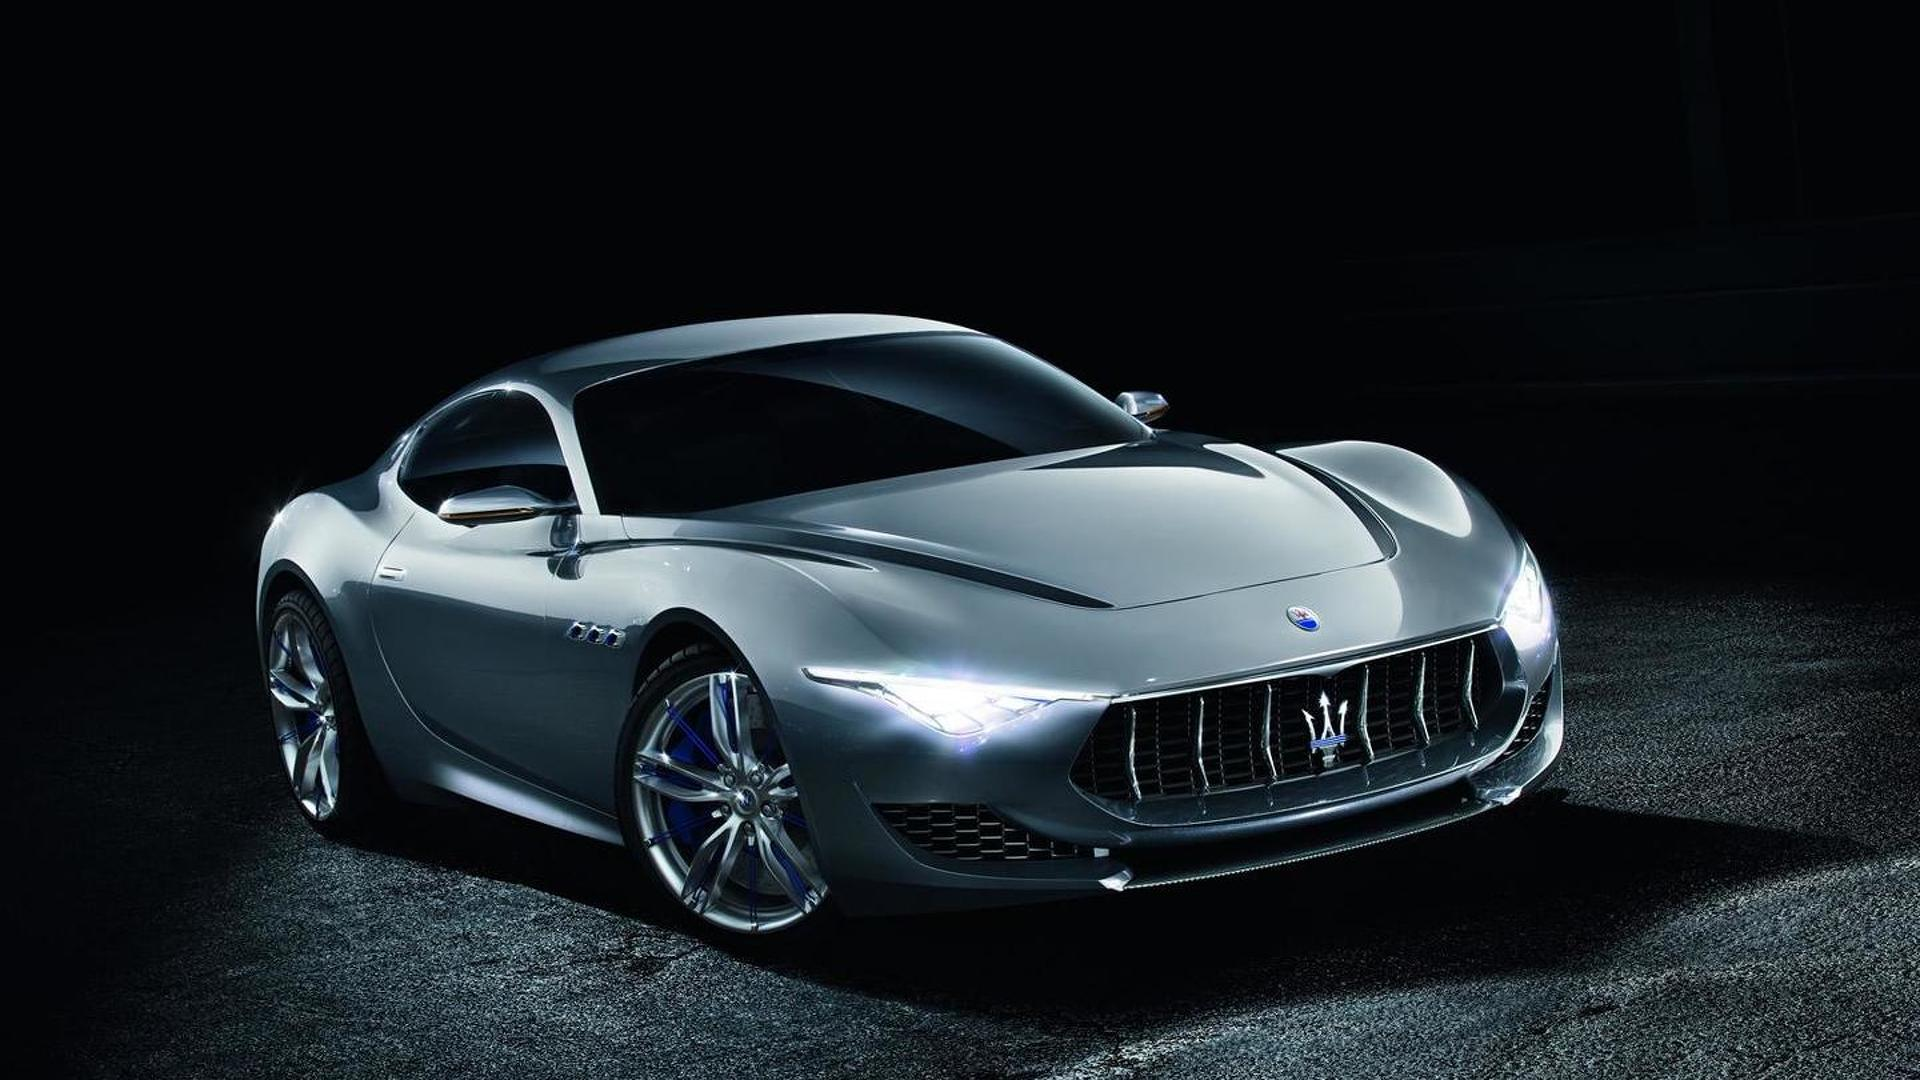 72 All New 2020 Maserati Granturismo Price and Review